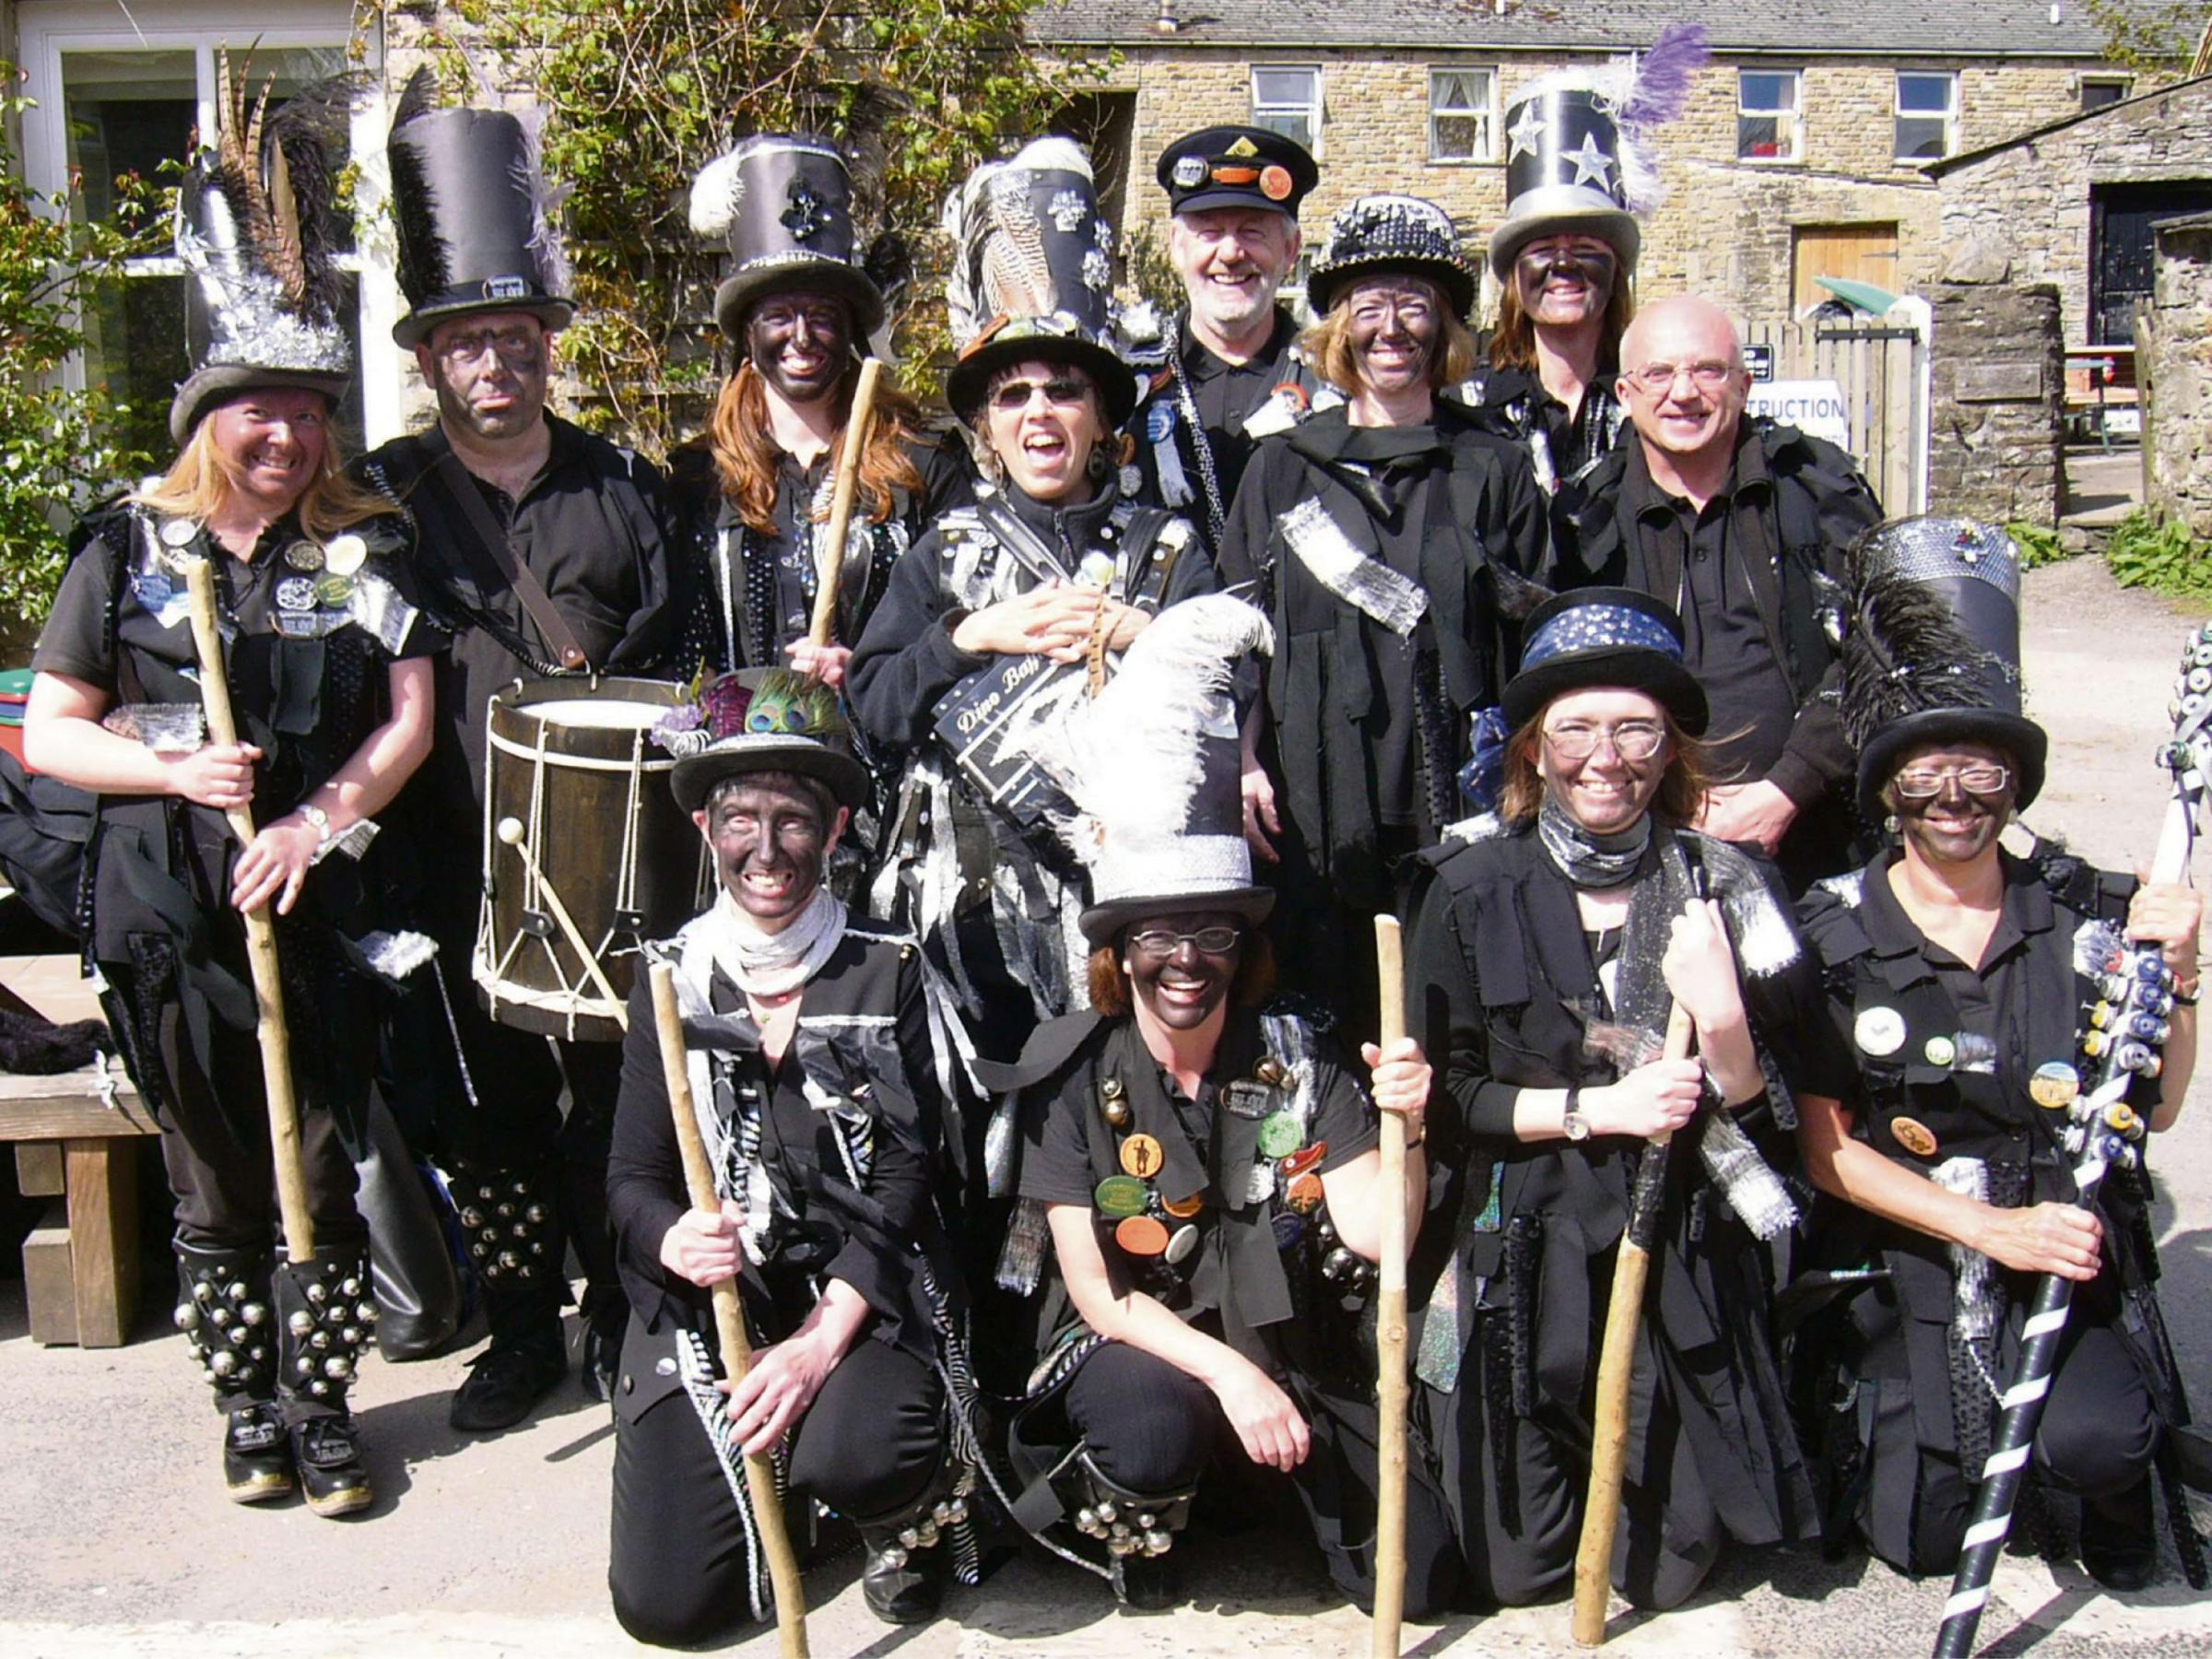 FESTVAL FUN: Morris dancers will be performing throughout the Sadberge festival